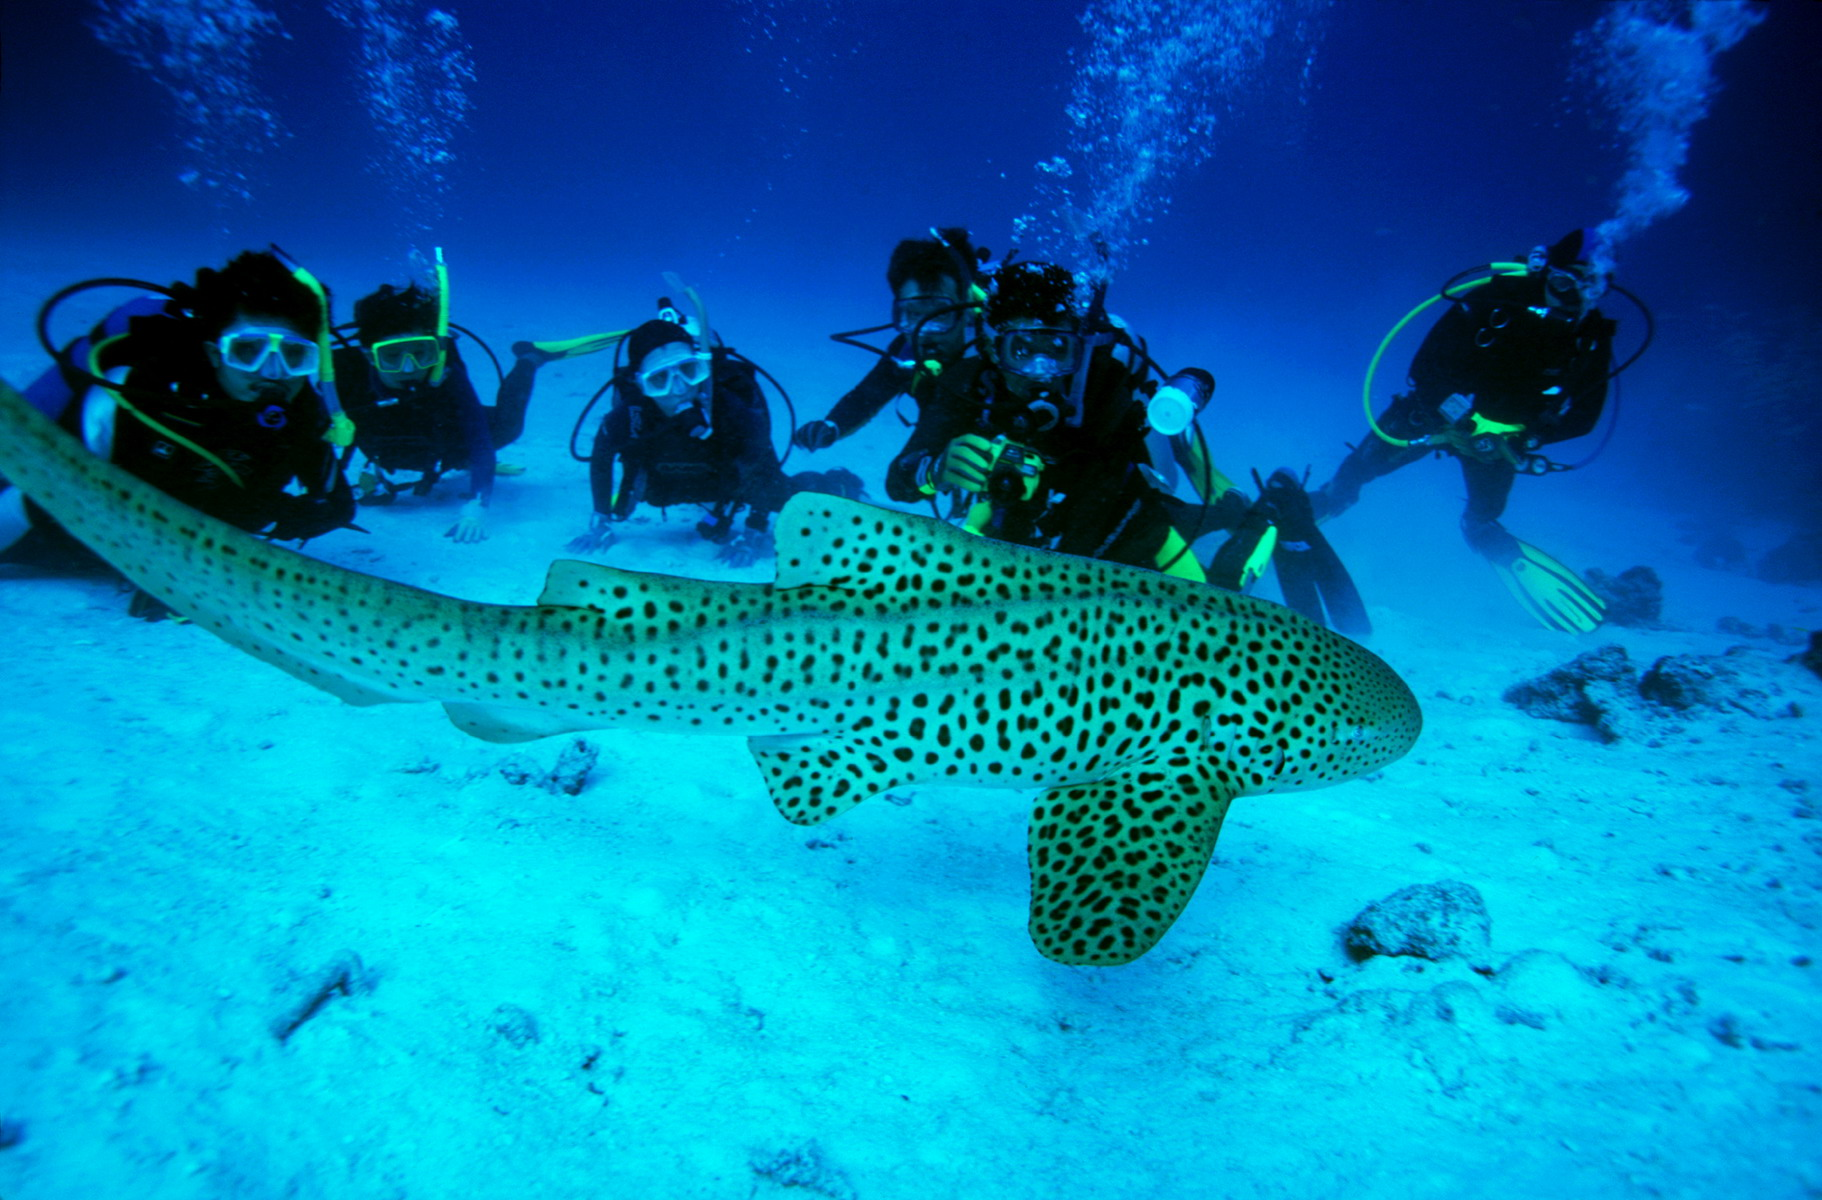 Amazing andaman inspire holidays resorts private limited - Where to dive in thailand ...